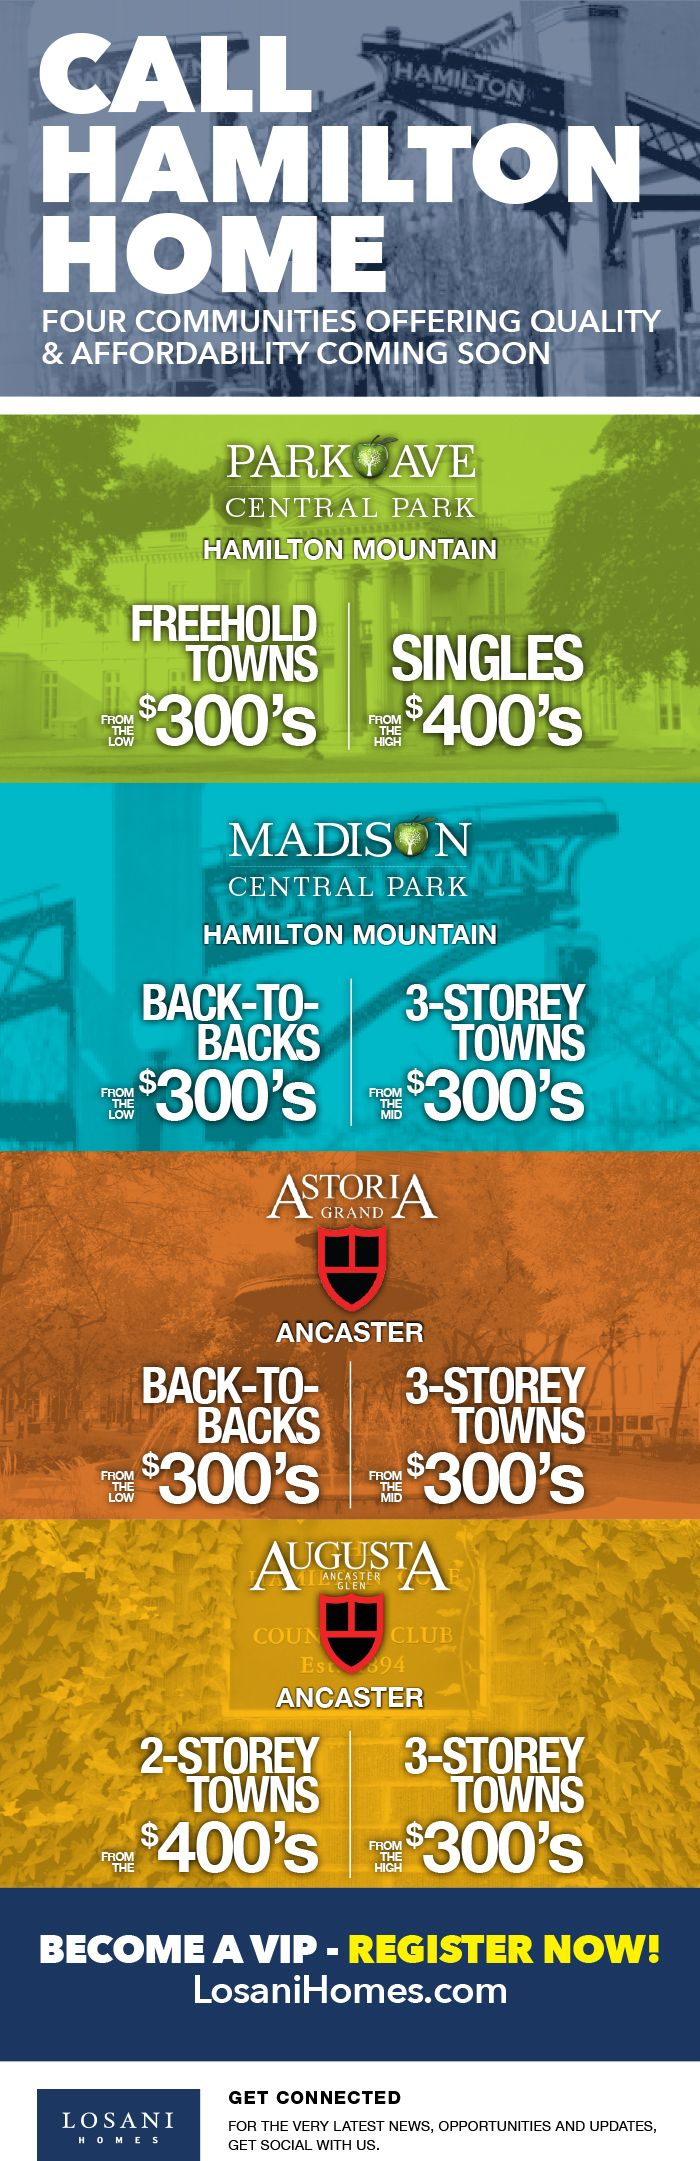 Call Hamilton Home! Register Now for New Communities by Losani Homes! Click here for more...http://conta.cc/2dHgJY4